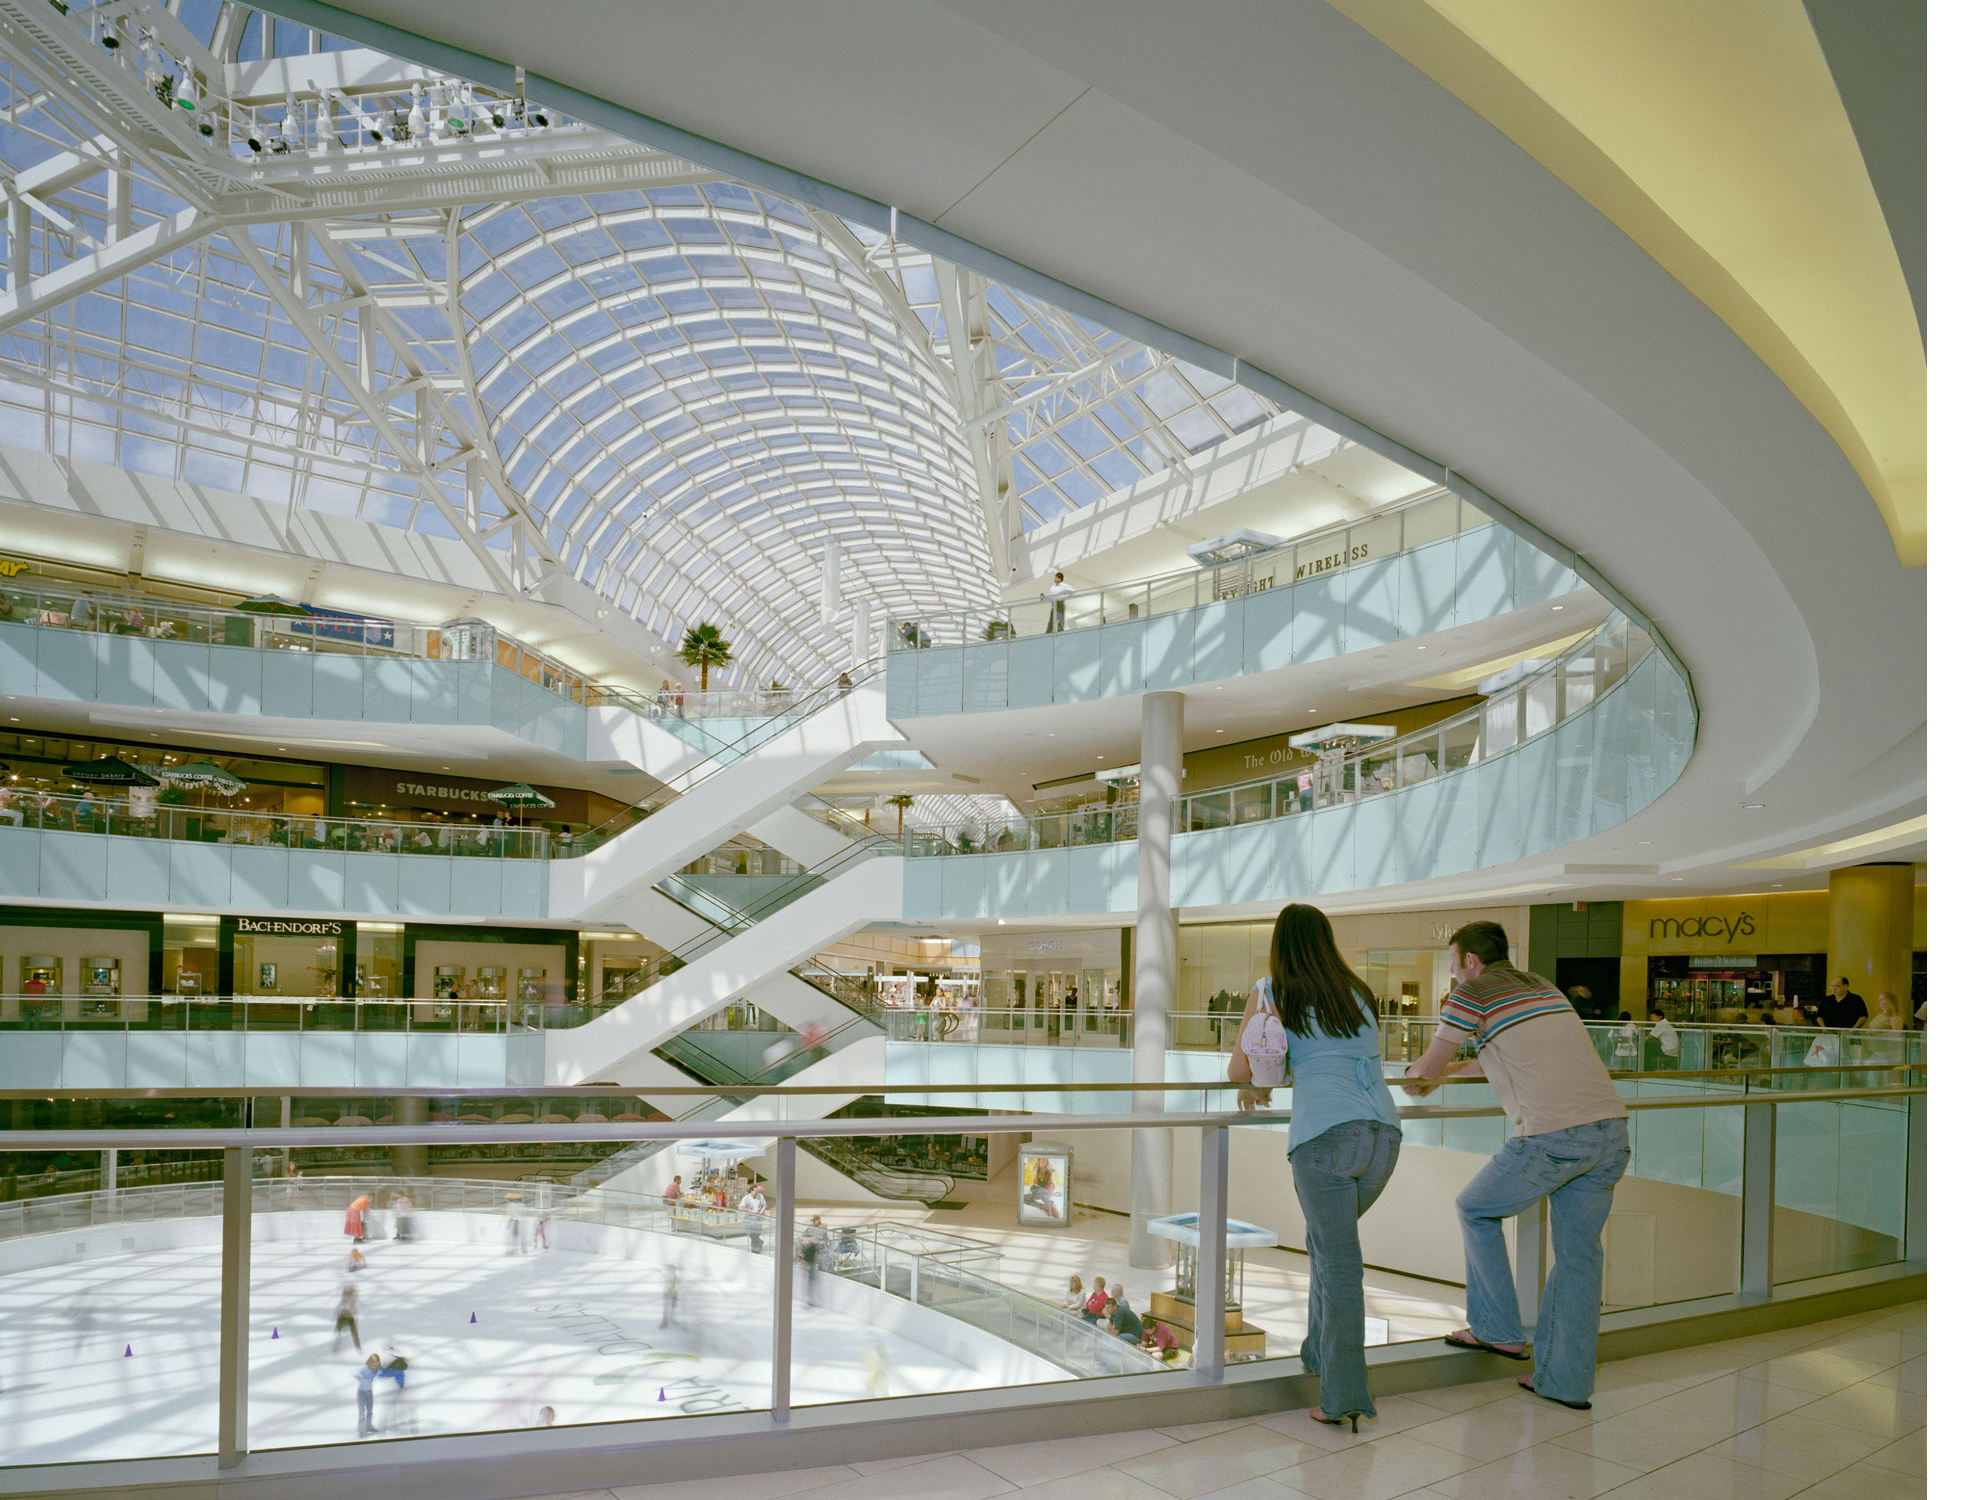 galleria_dallas_gallery_1.jpg